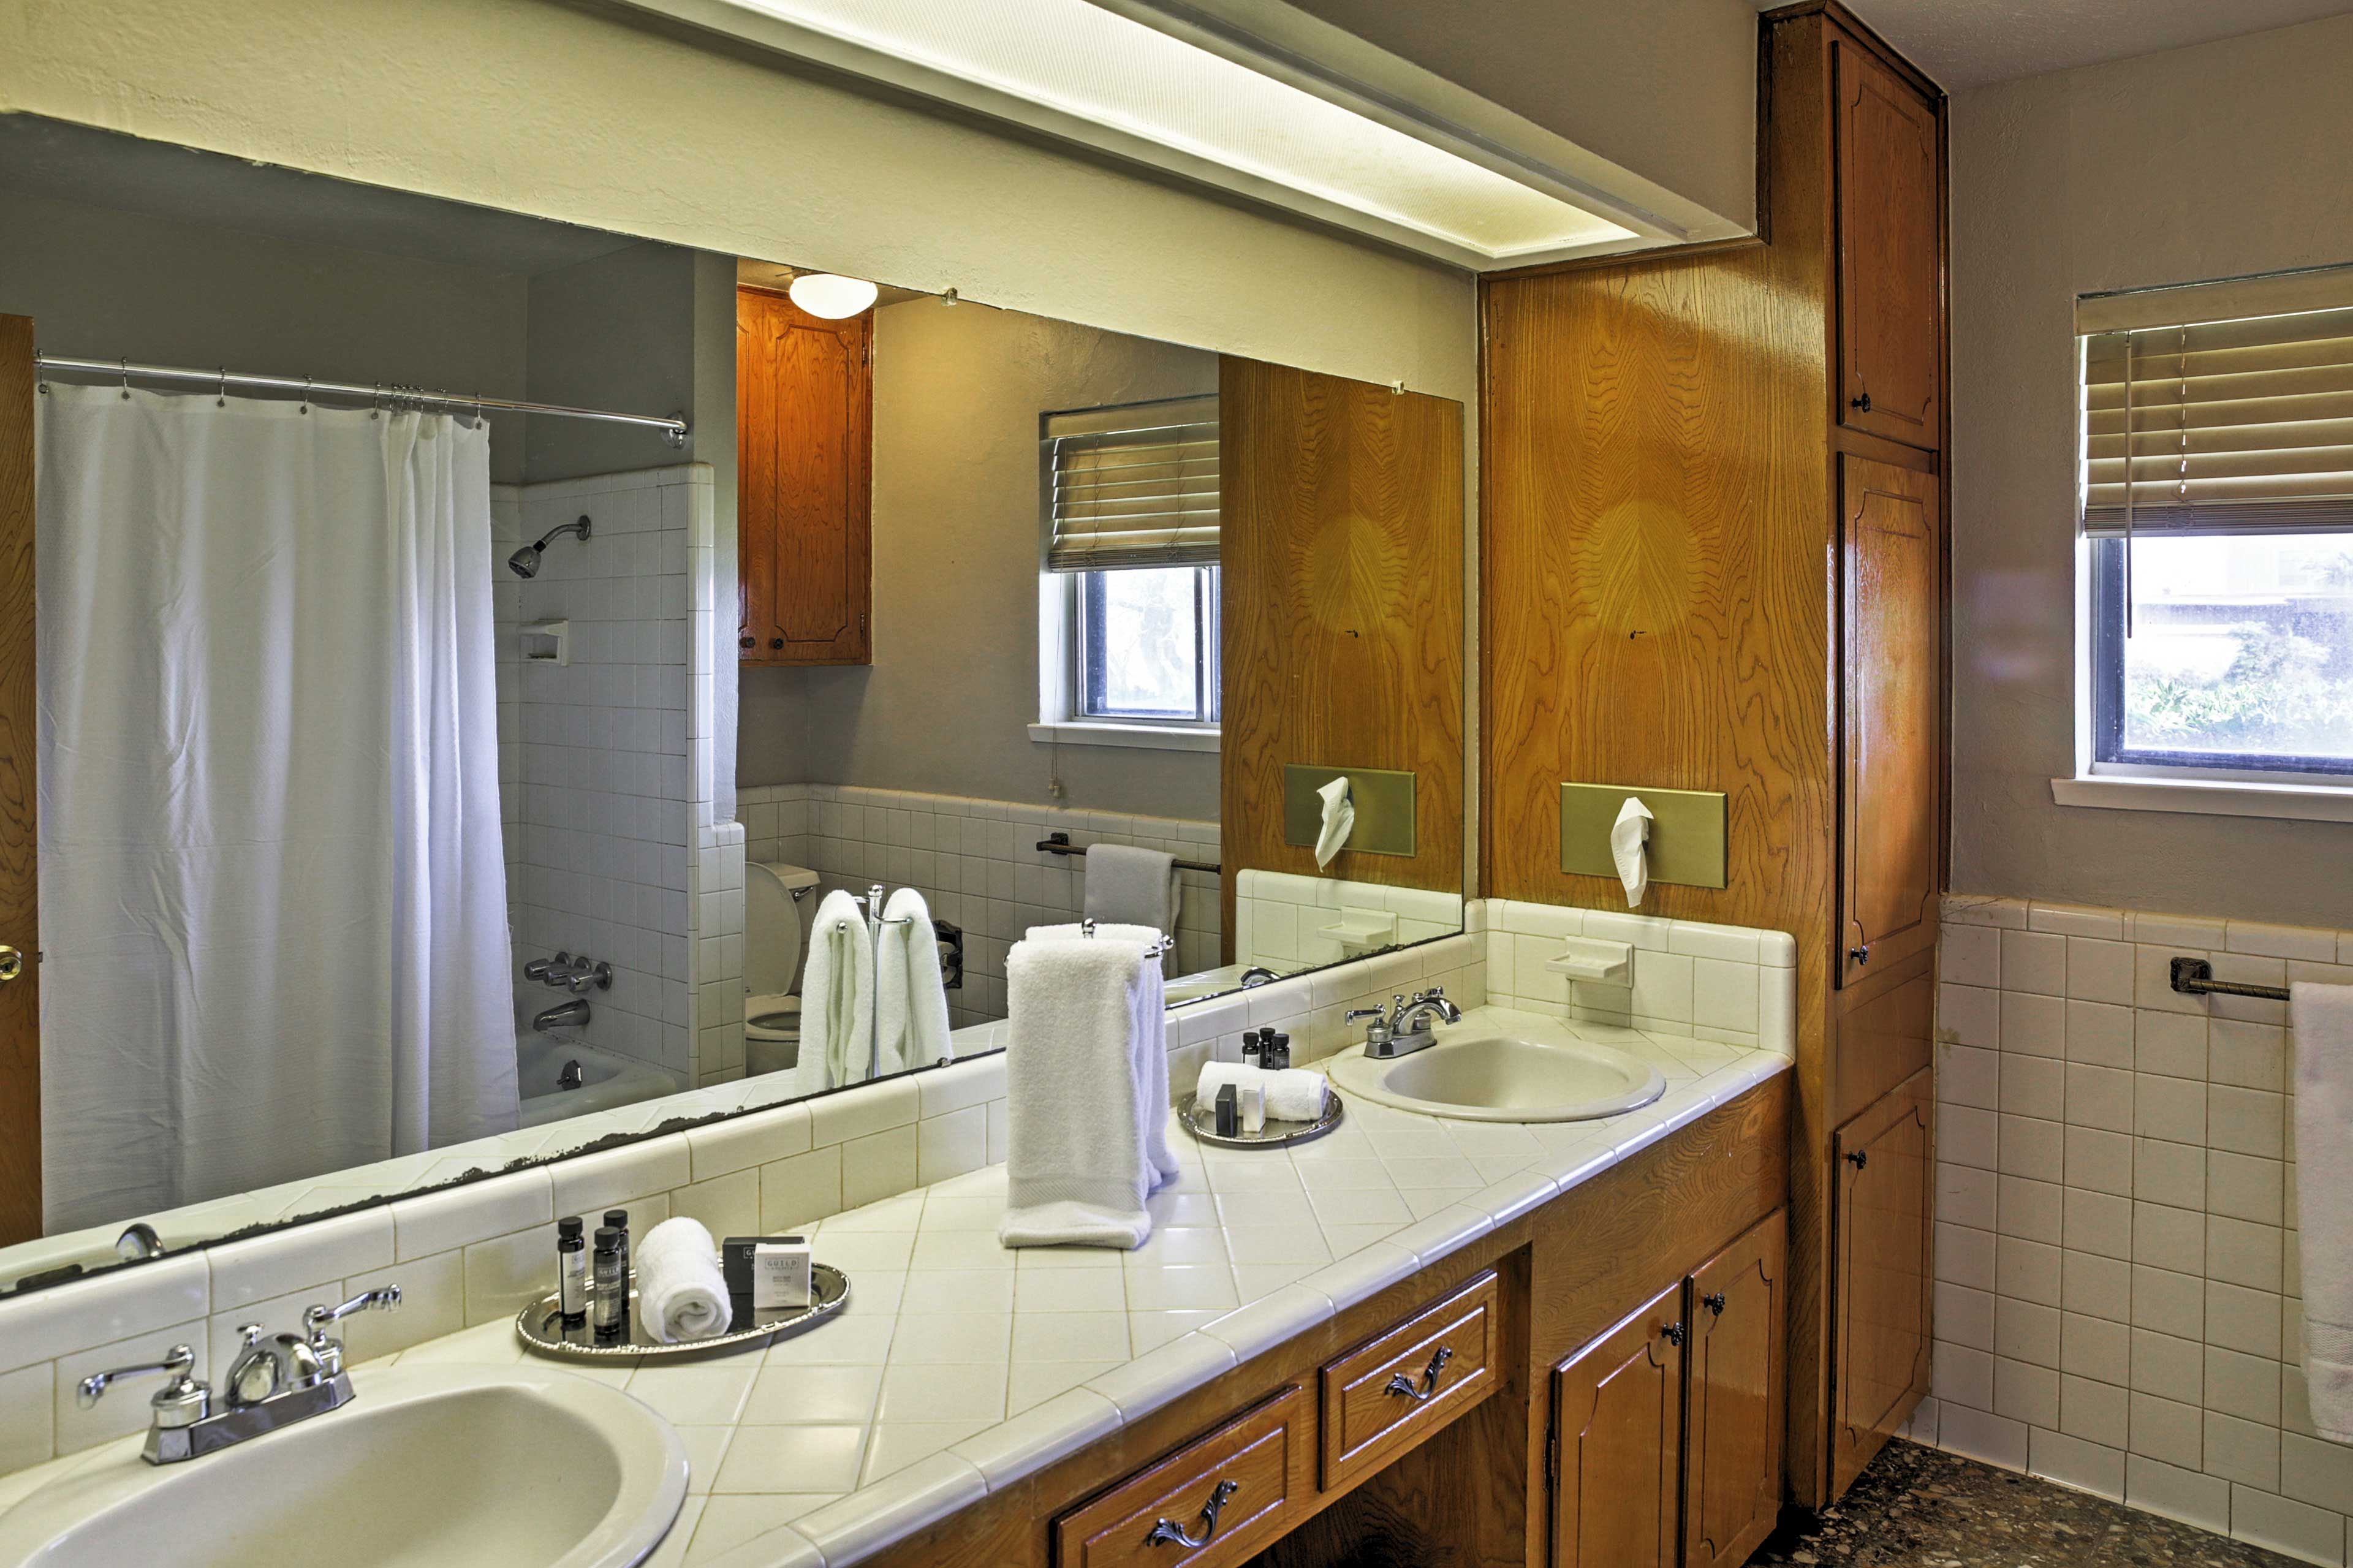 Utilize the abundance of counterspace in the bathroom!